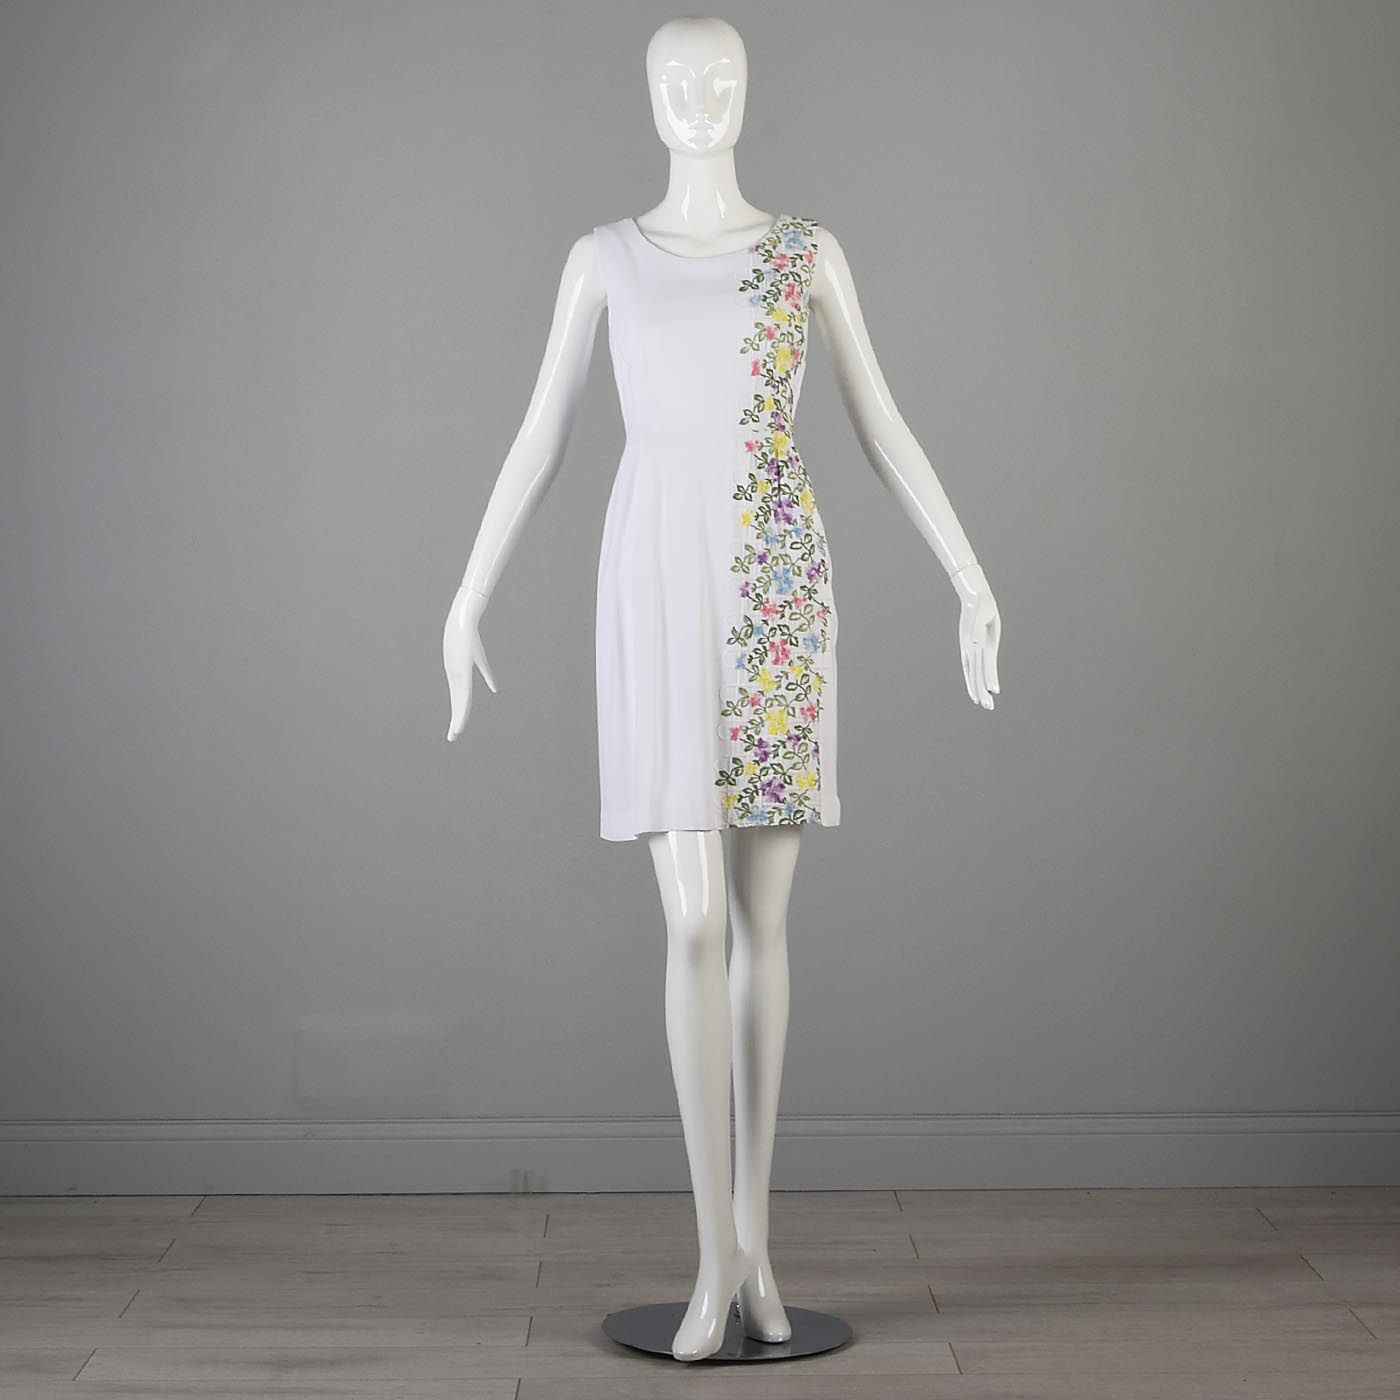 1950s White Day Dress with Floral Embroidery